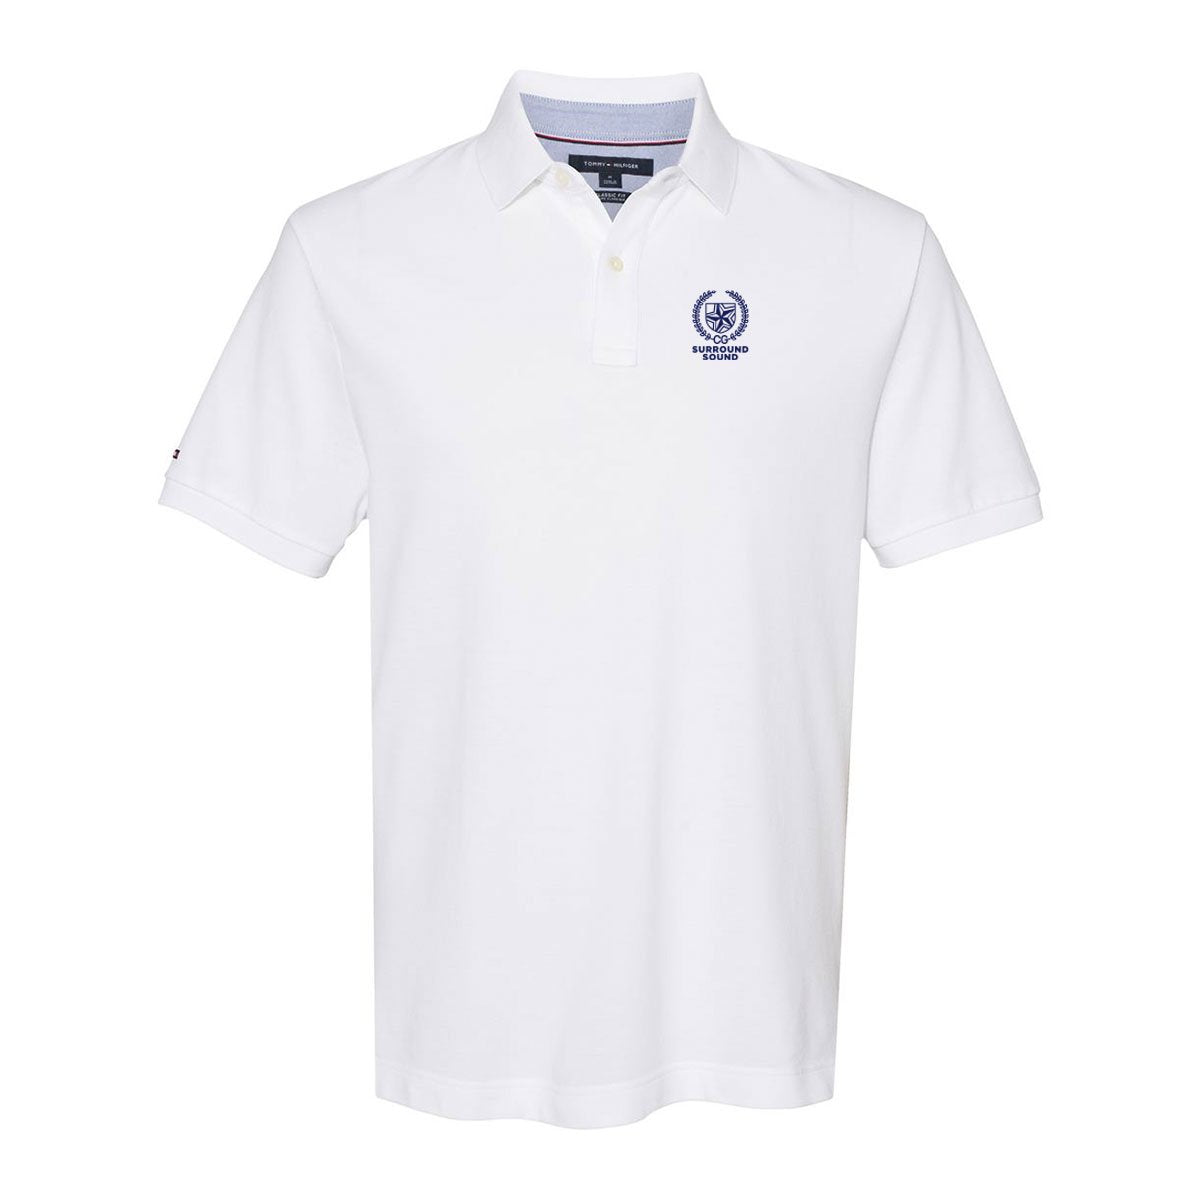 Surround Sound White Tommy Hilfiger Polo